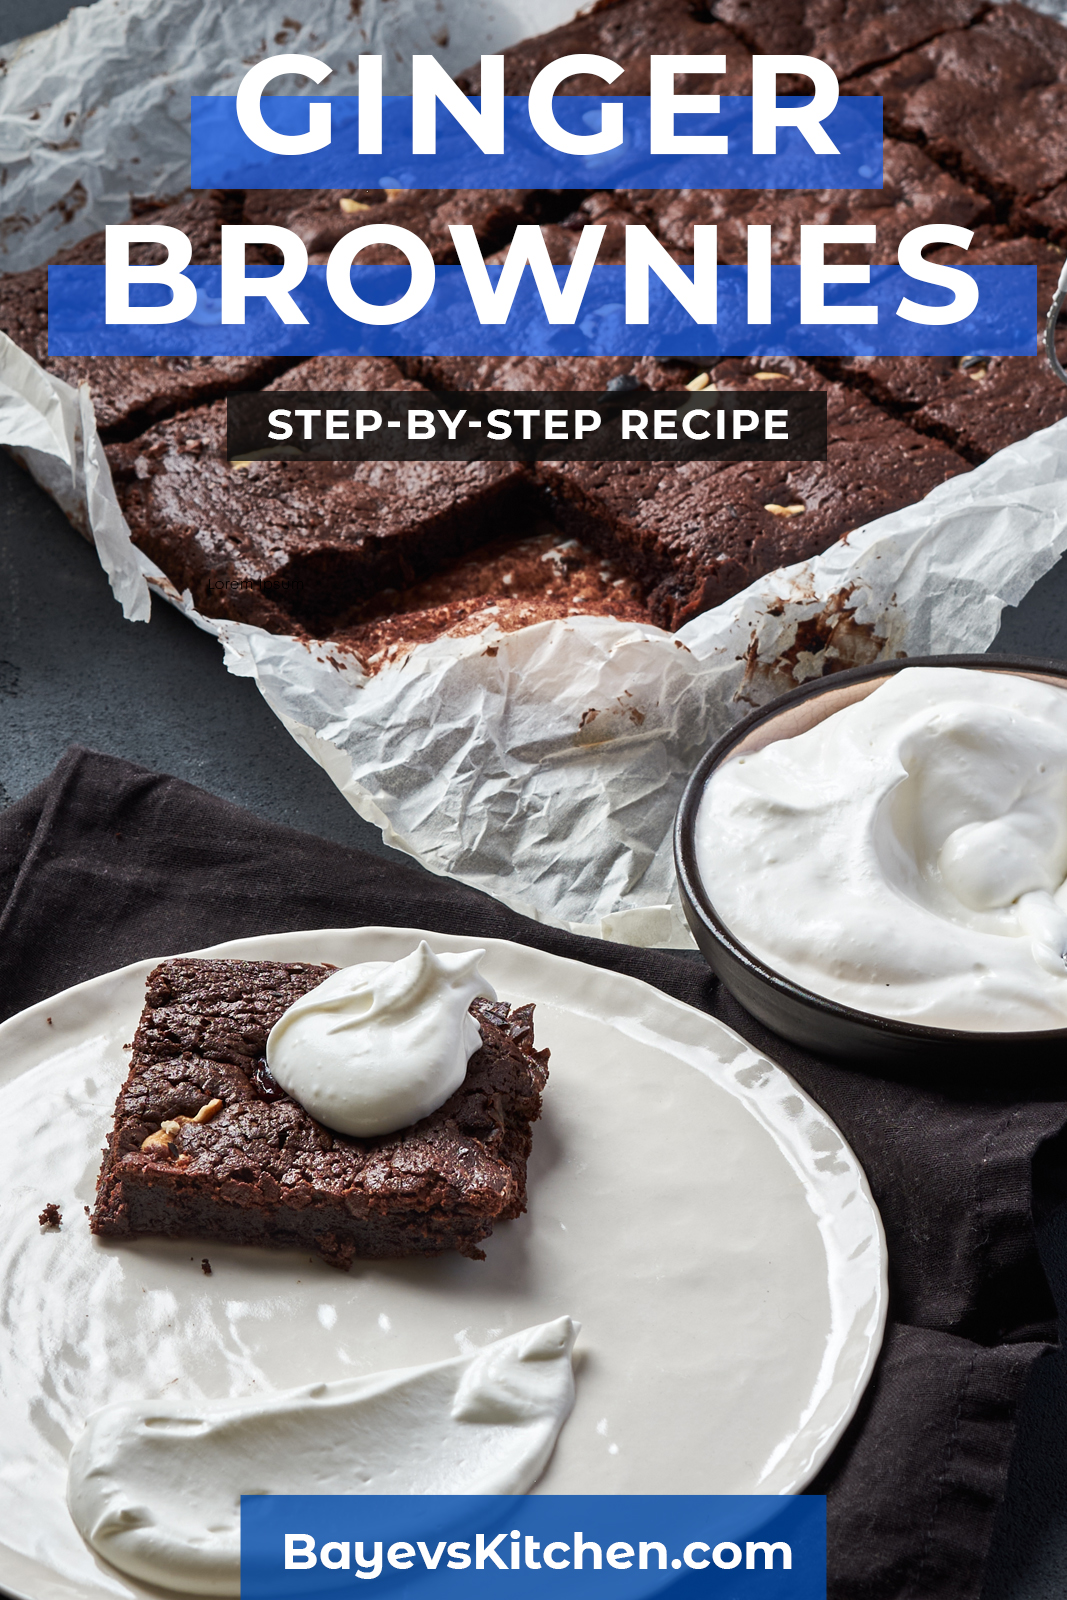 Ginger Brownies Step By Step Recipe